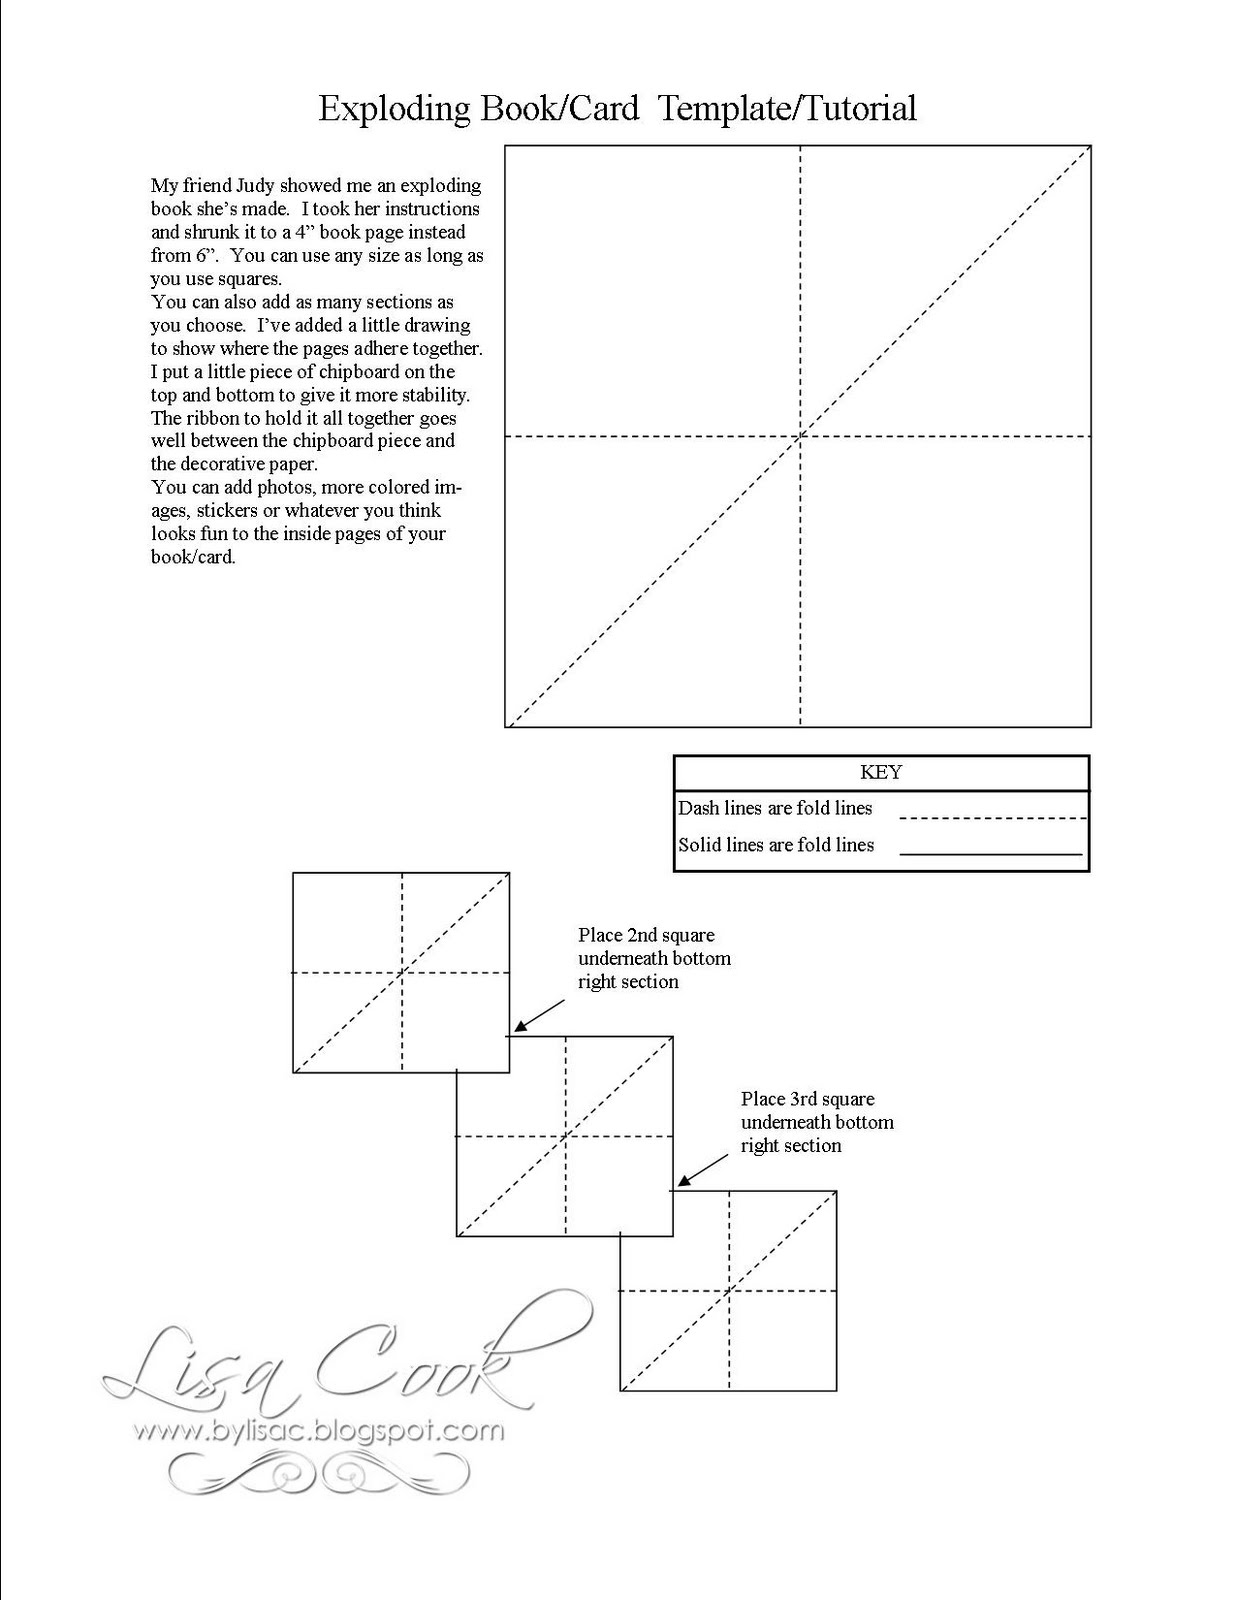 Pizza Box Template http://bylisac.blogspot.com/p/exploding-bookcard-templatetutorial.html